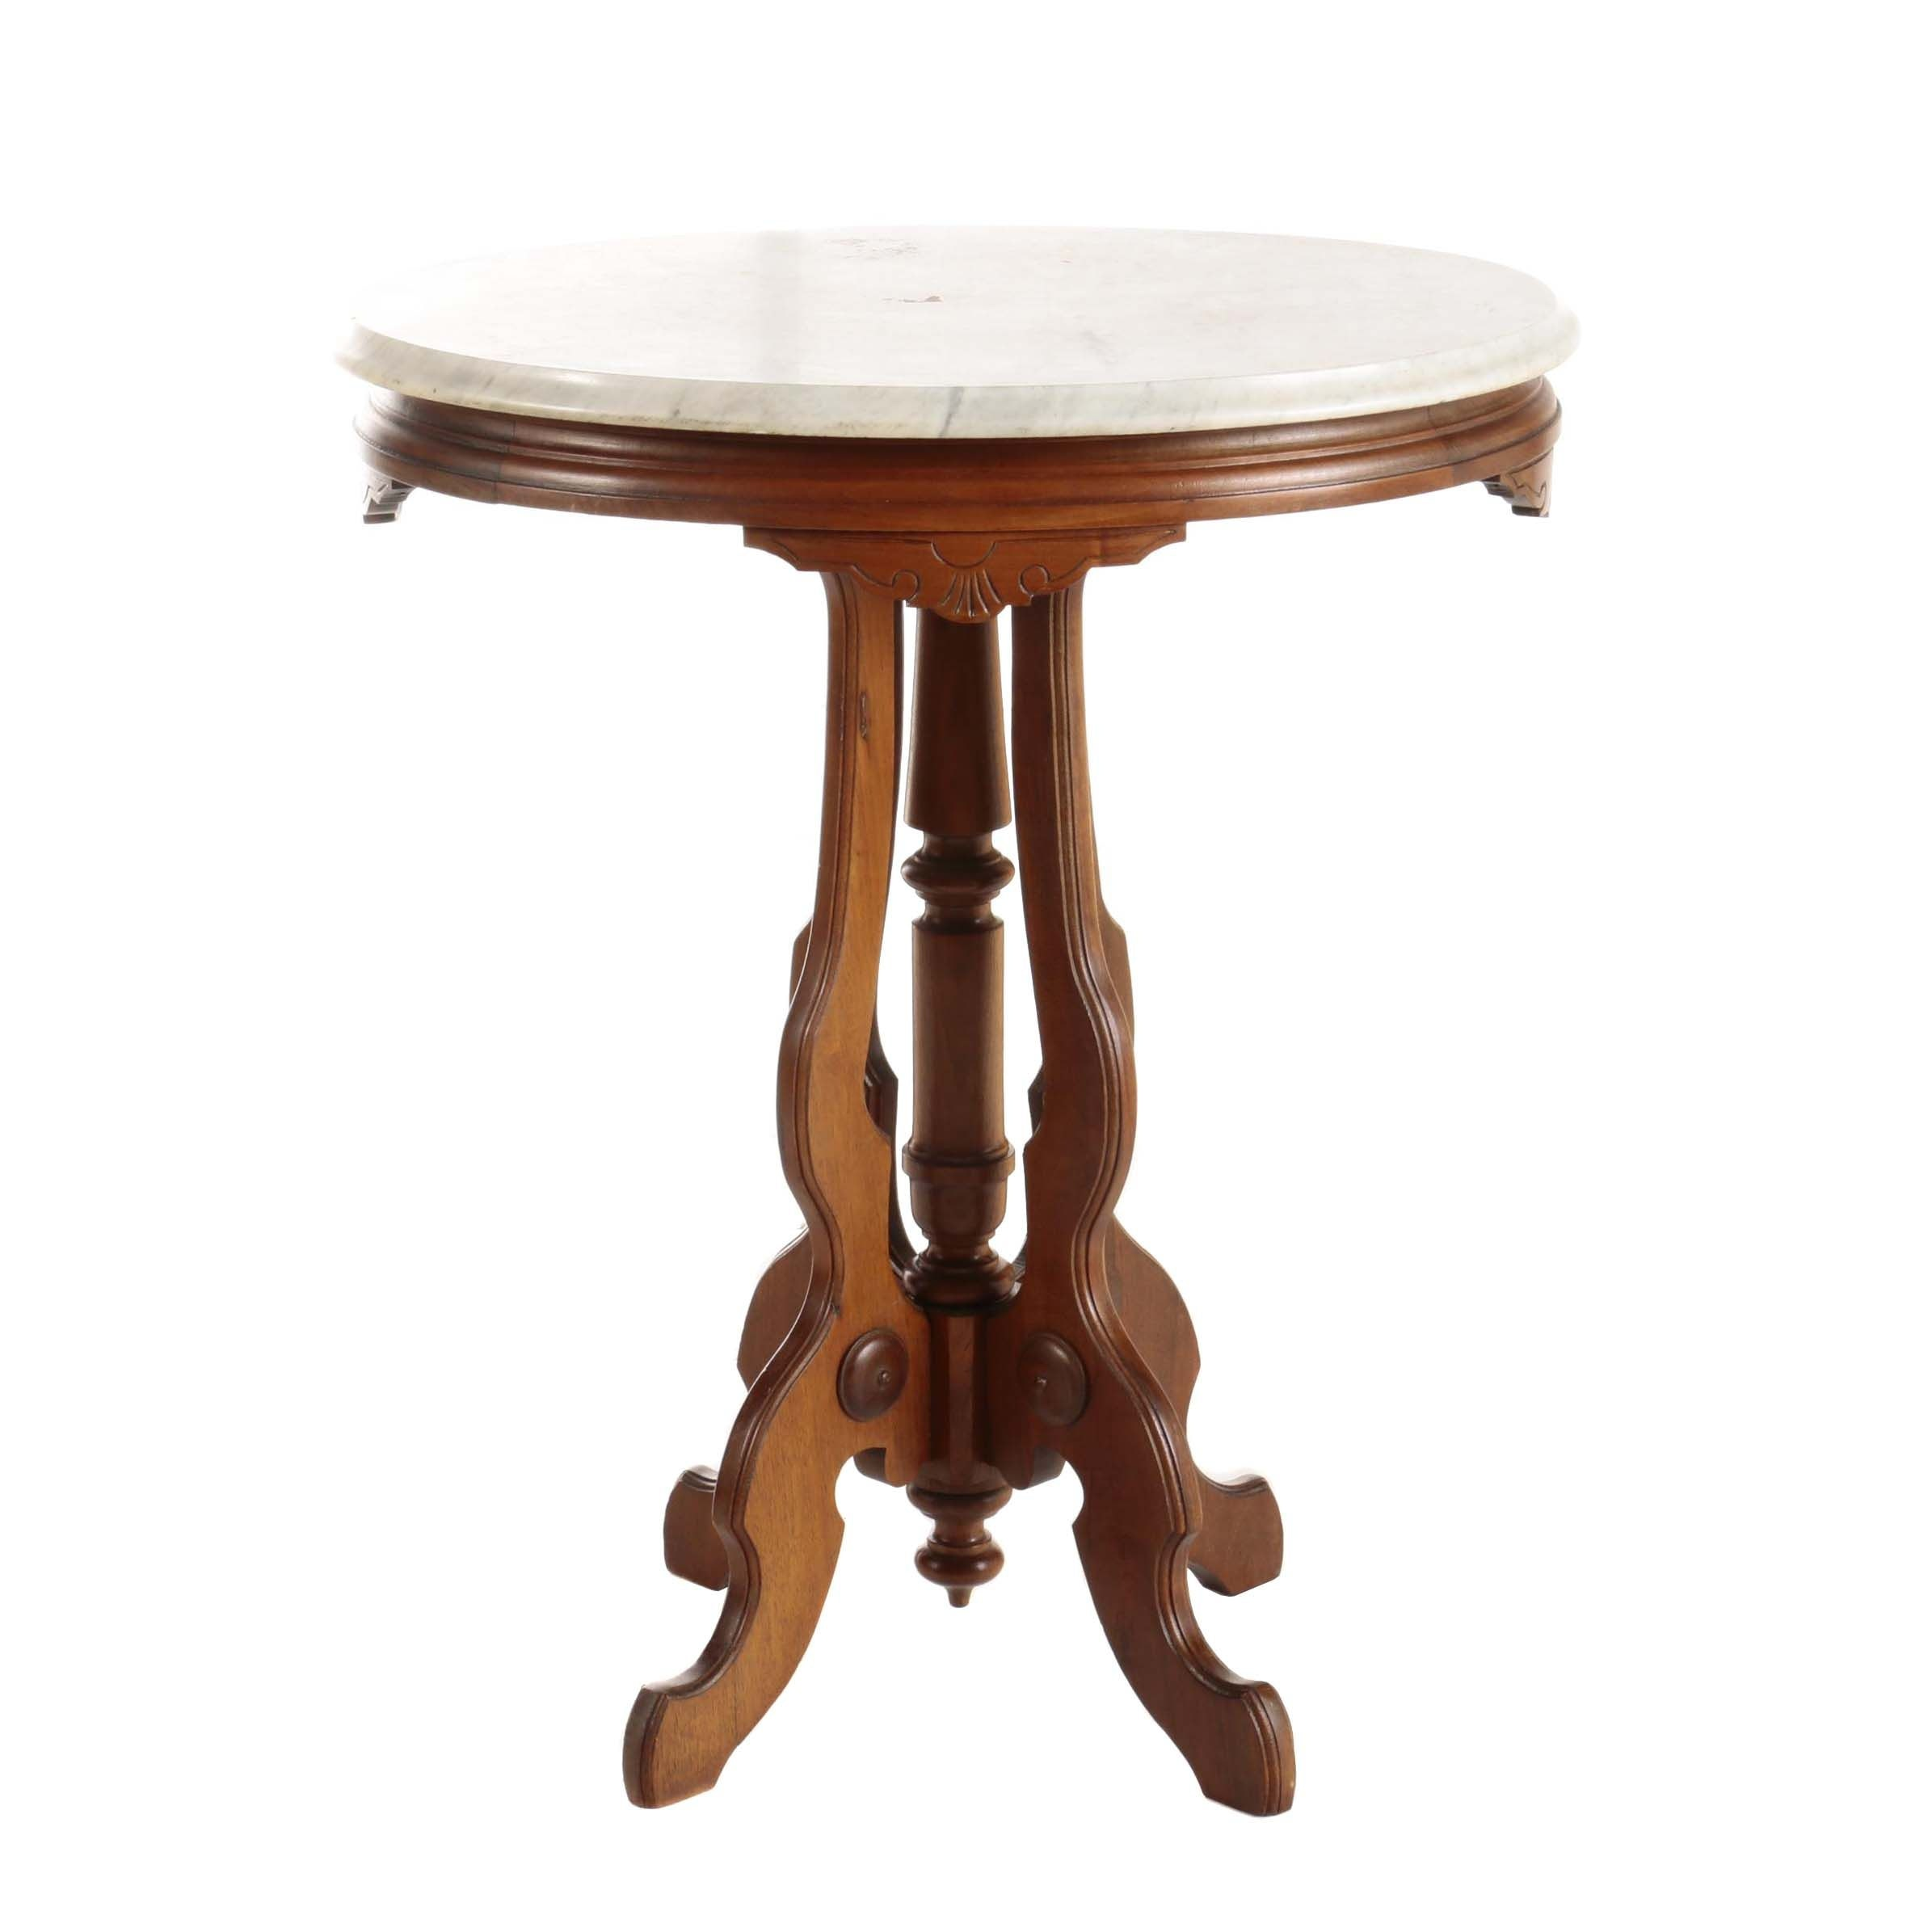 Eastlake Incised Walnut and Marble Top Side Table, Late 19th Century